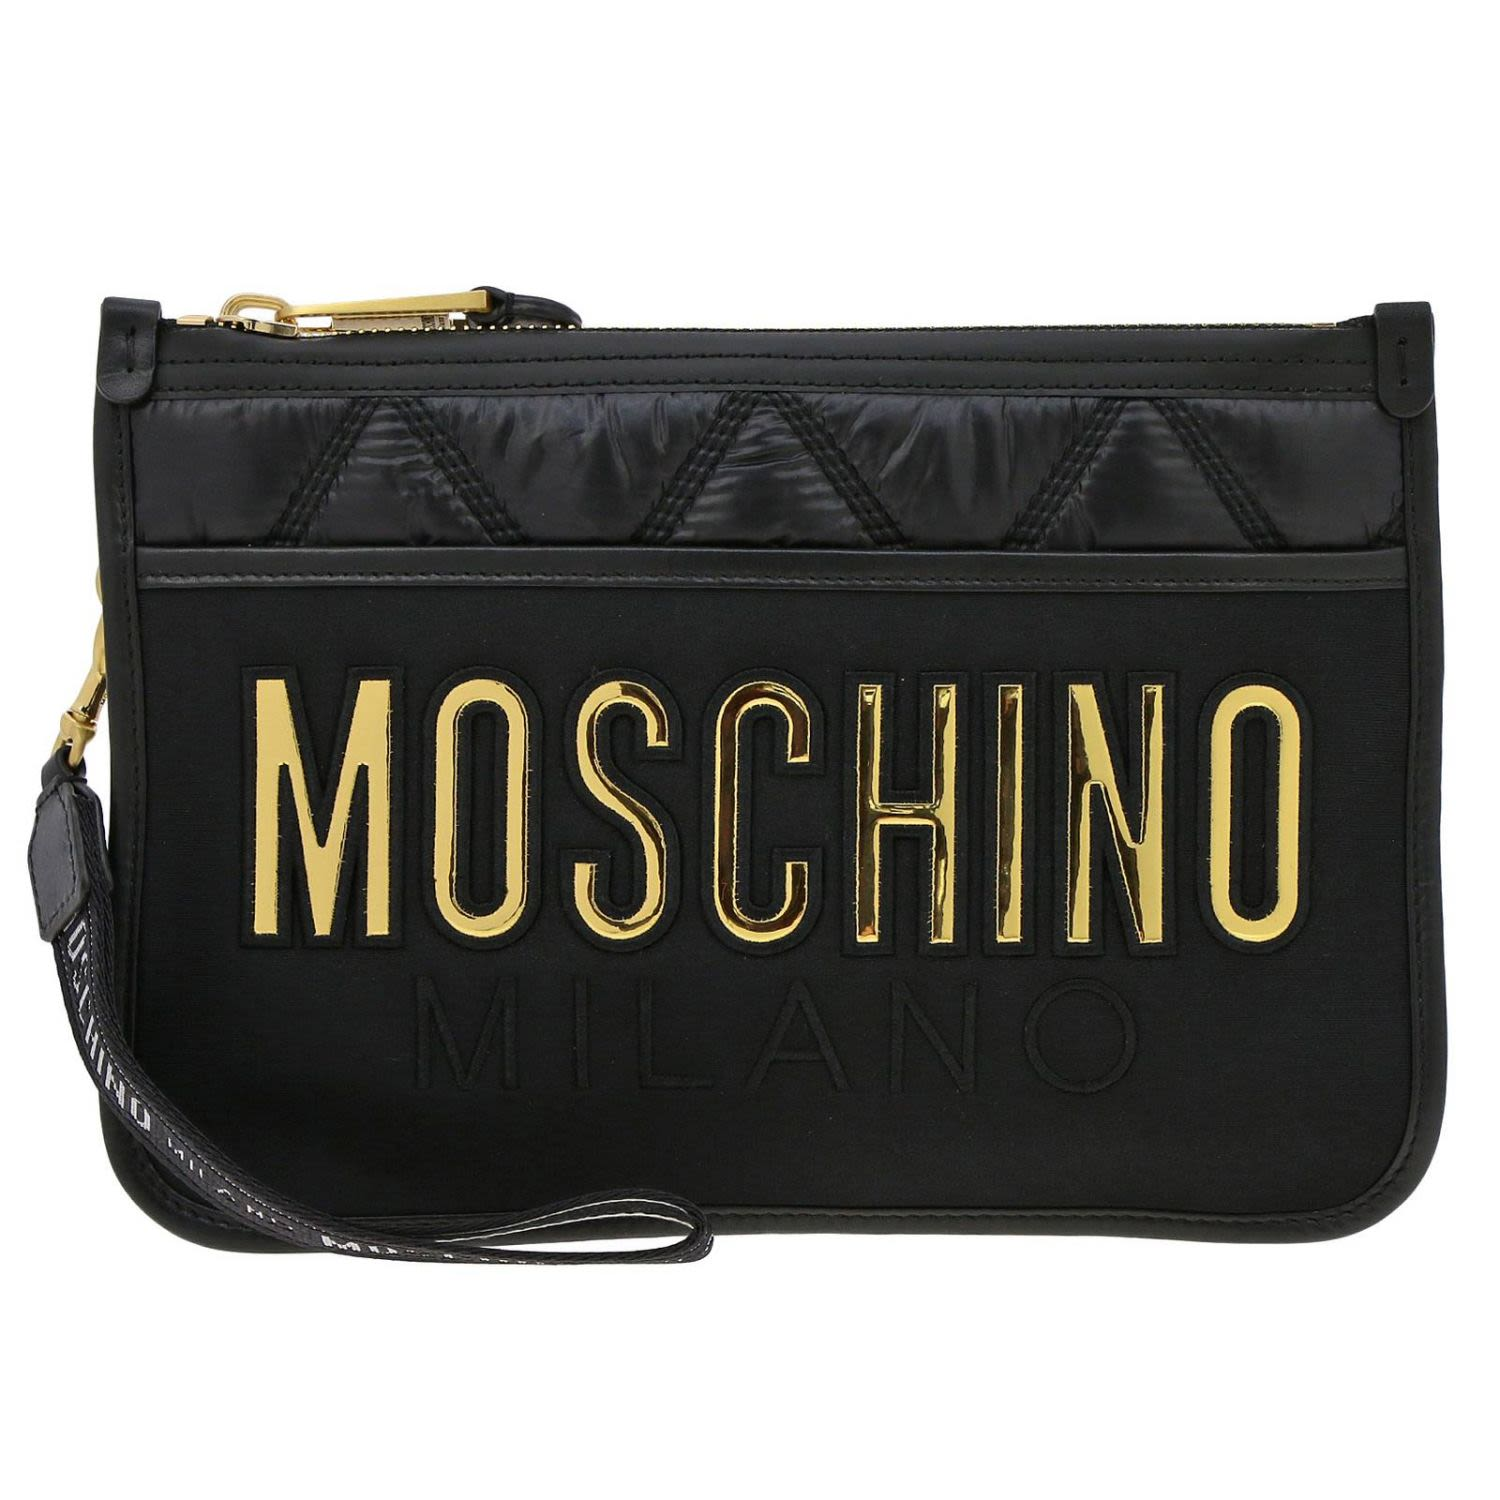 Couture Clutch Women Bag Shoulder Moschino wXgpHaqdd